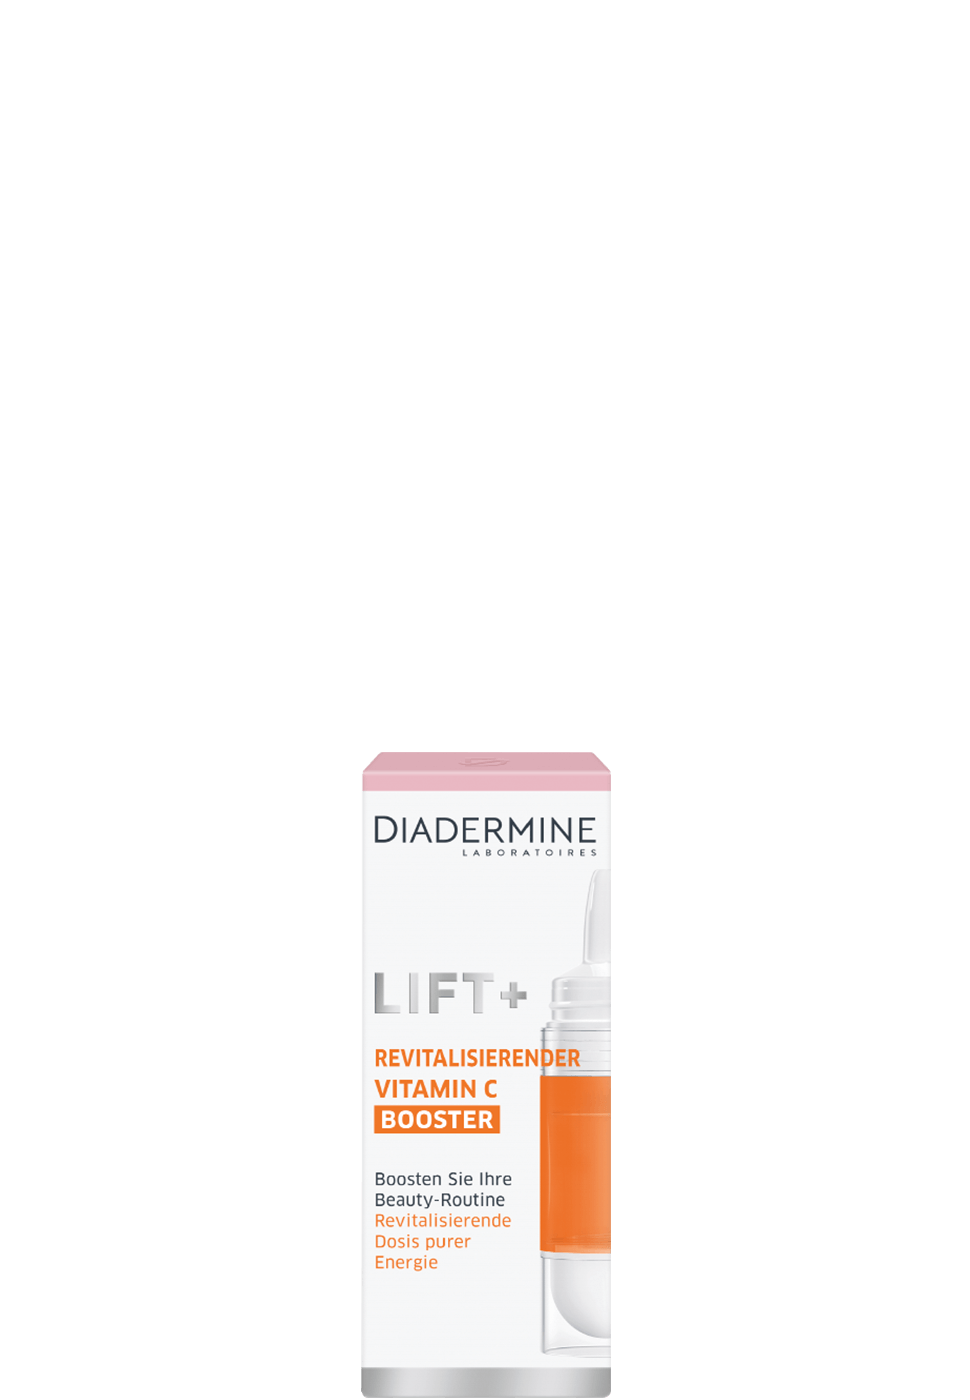 diadermine_de_lift_plus_revitalisierender_vitamin_c_booster_970x1400